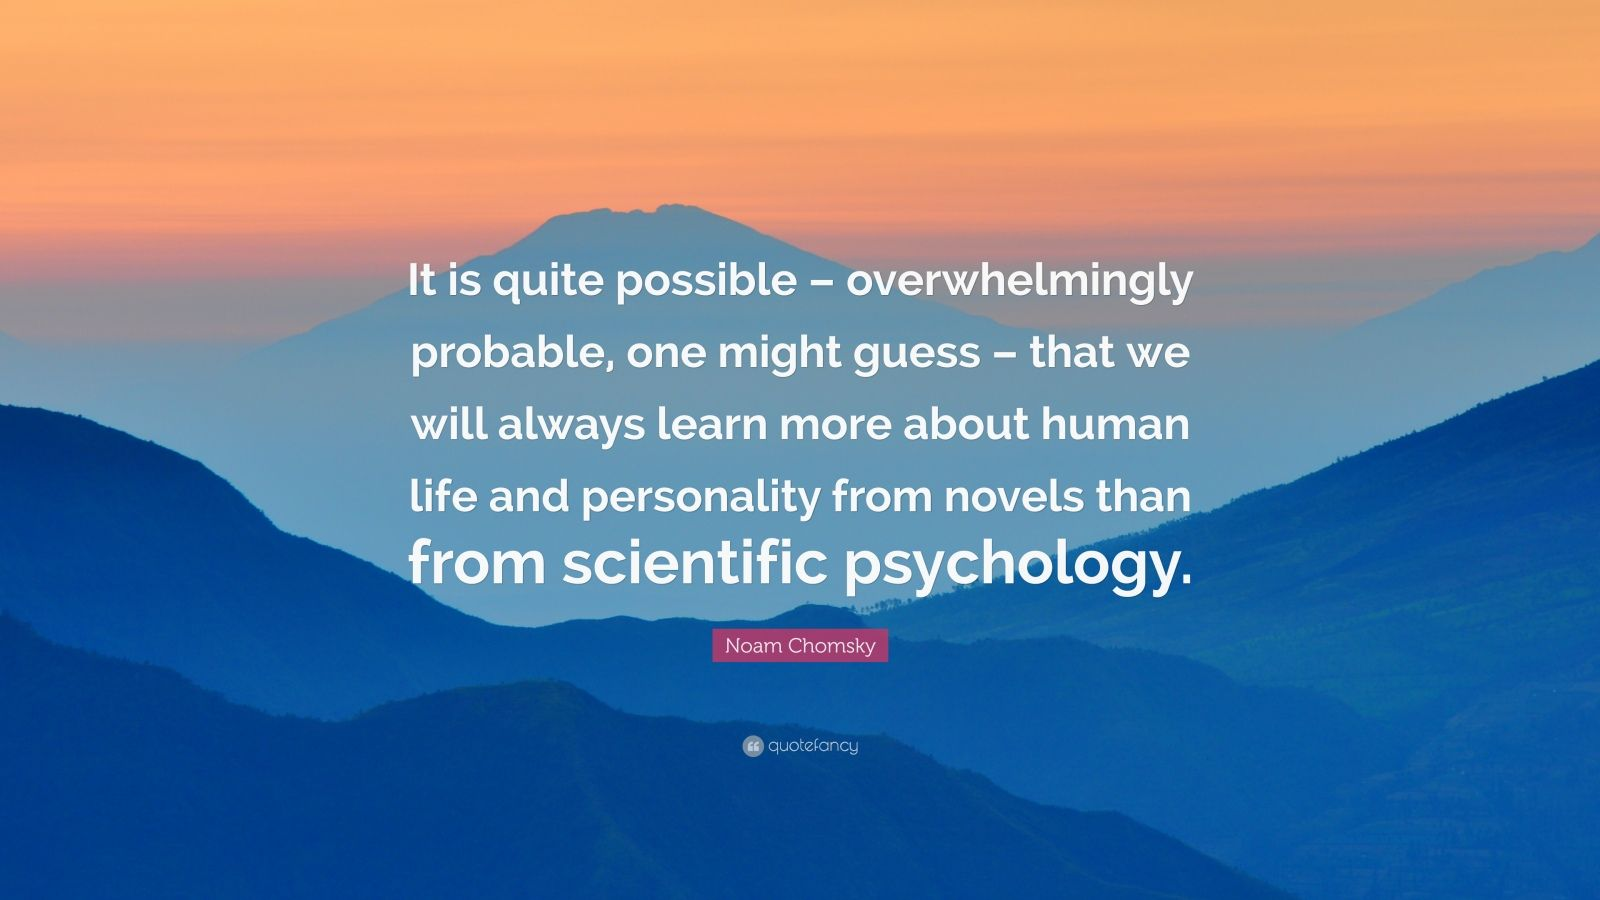 """Noam Chomsky Quote: """"It is quite possible – overwhelmingly probable, one might guess – that we will always learn more about human life and personality from novels than from scientific psychology."""""""